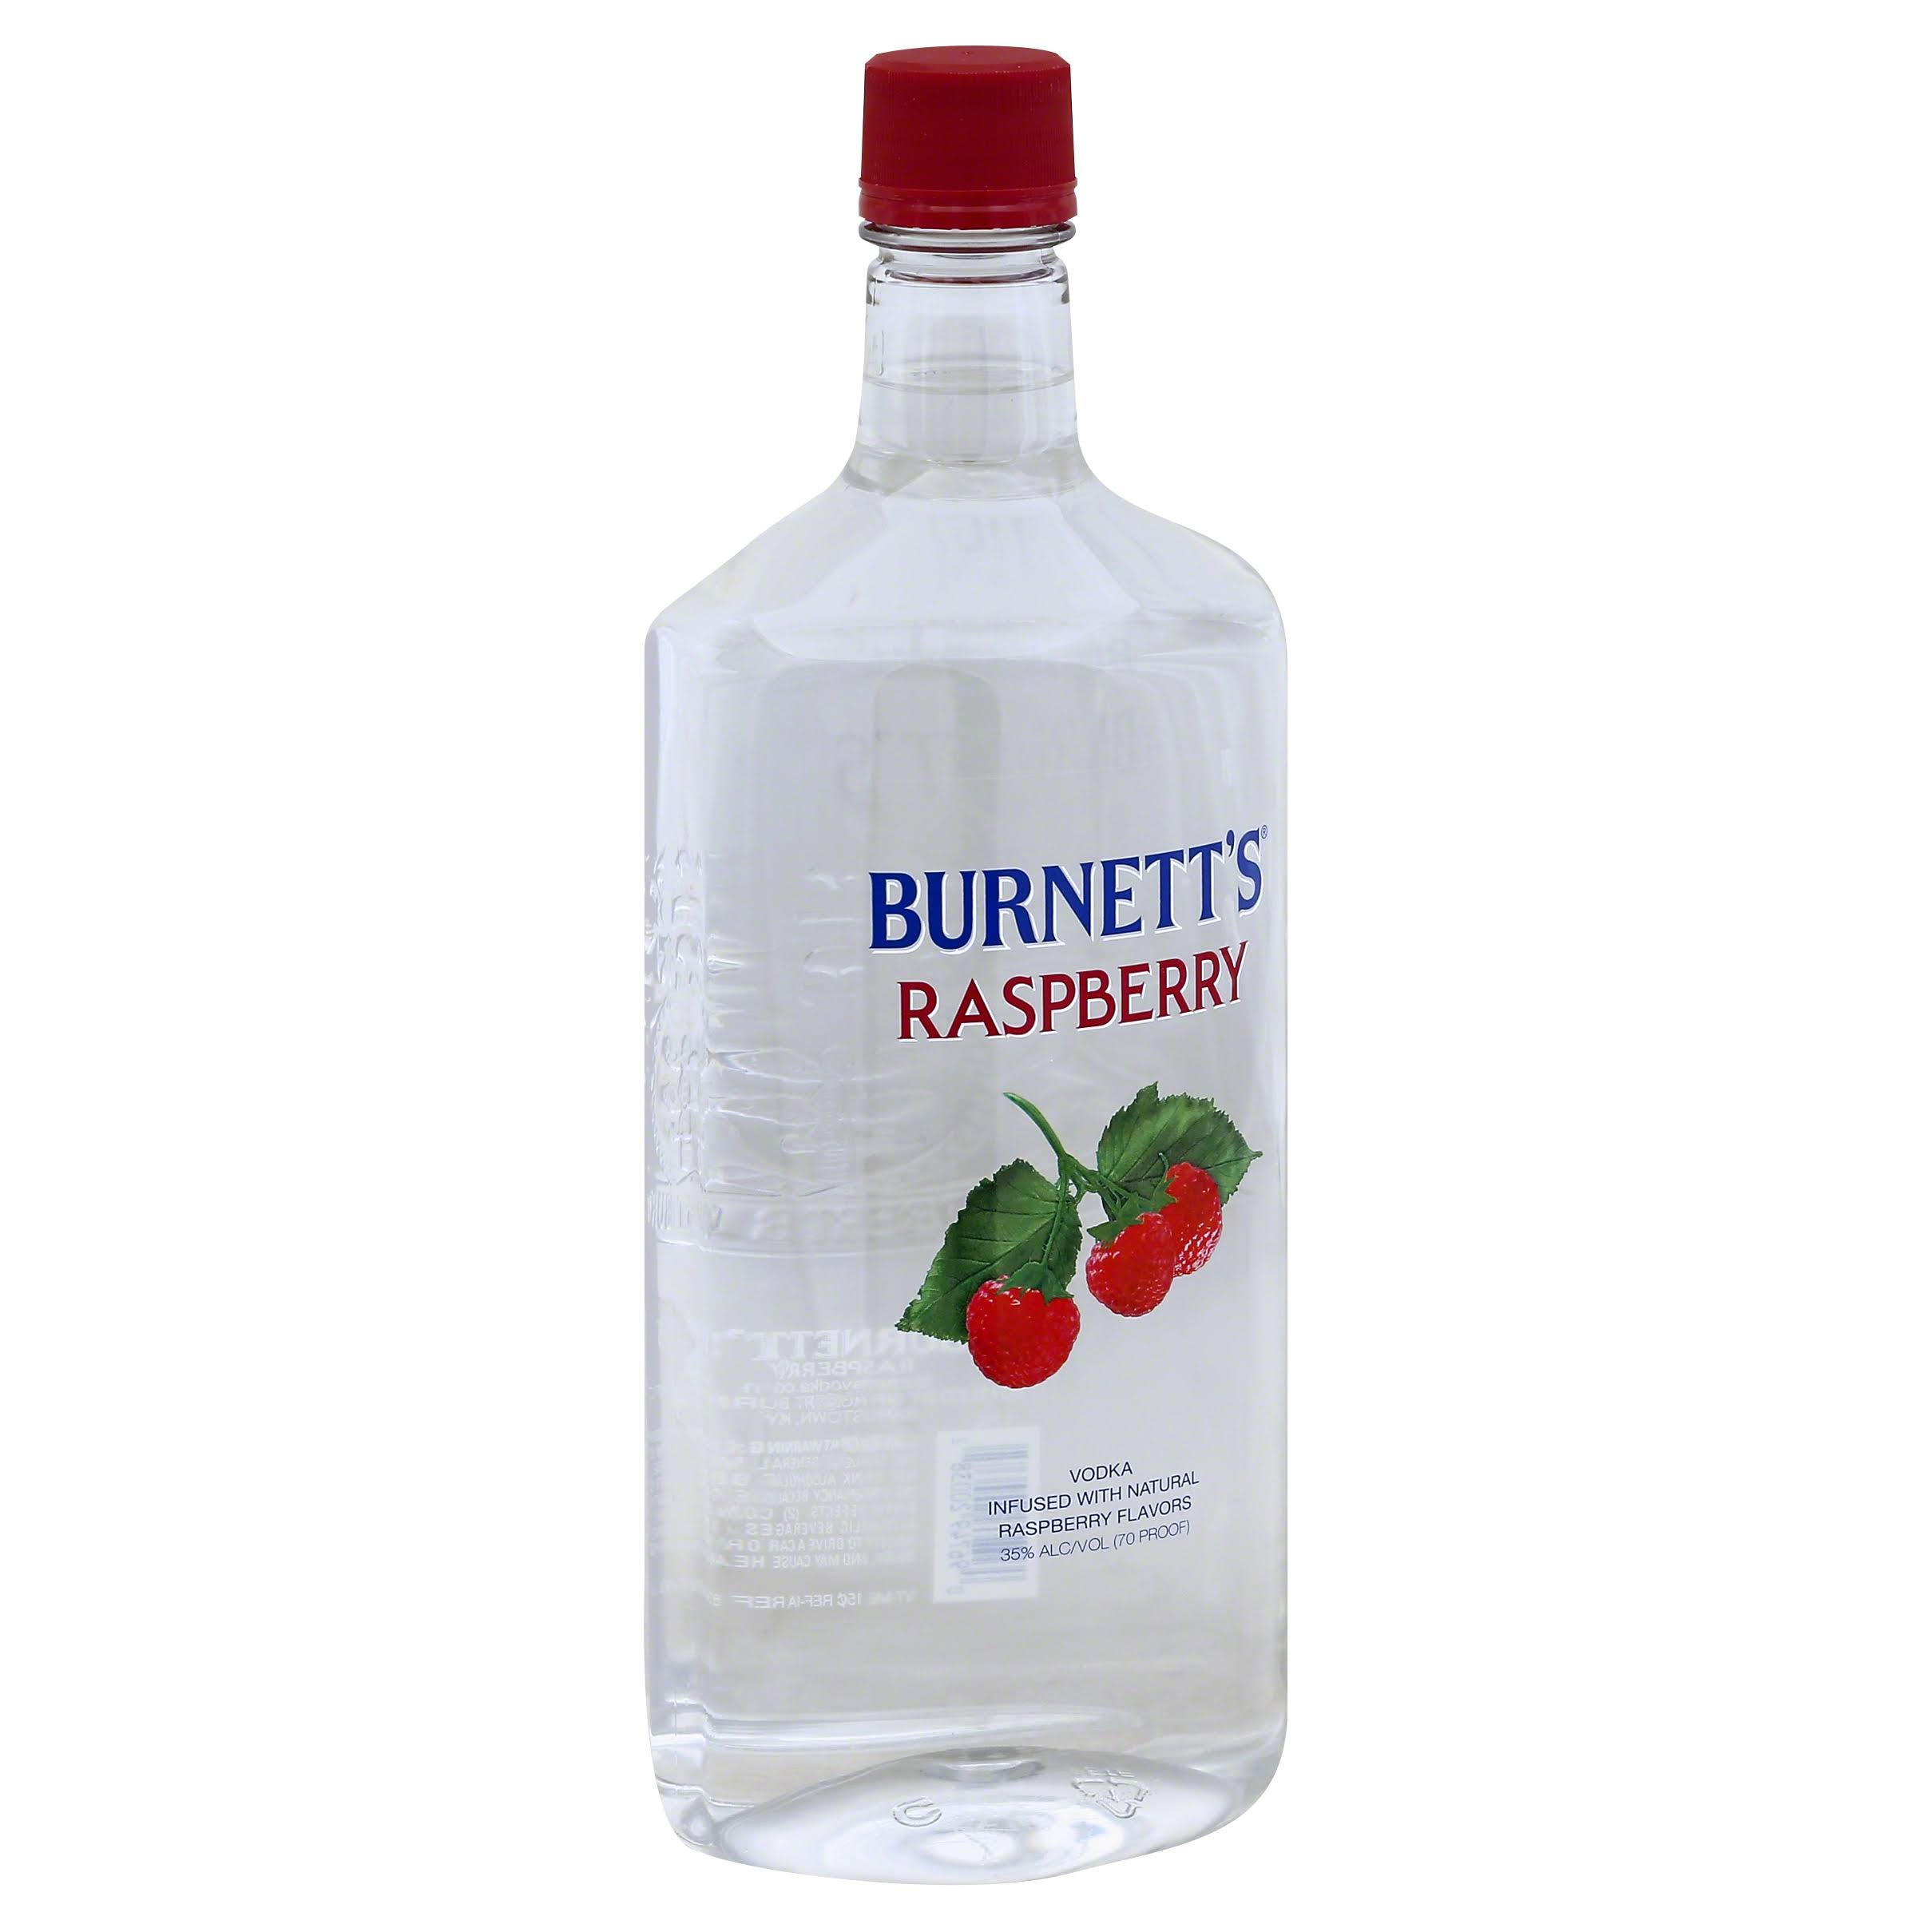 Burnett's Flavored Vodka - Raspberry - 1.75L